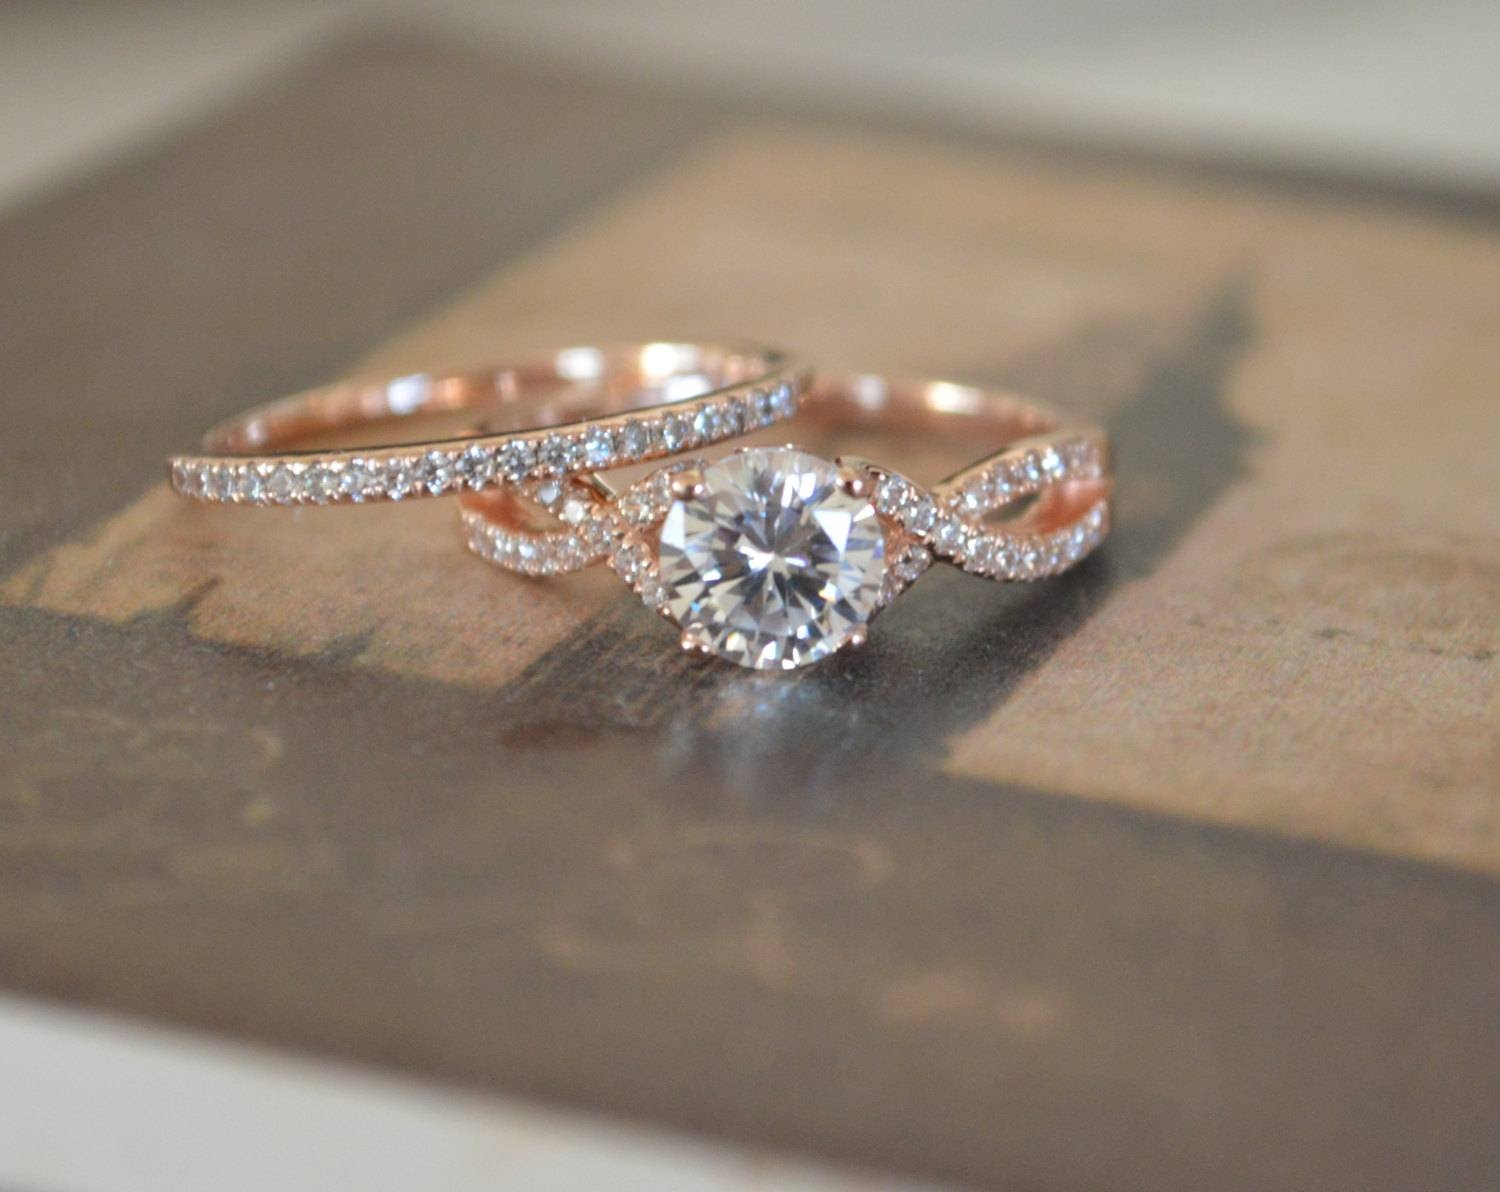 Engagement Ring Band Setting Rose Gold Twisted Band Intended For Infinity Twist Wedding Bands (View 7 of 15)